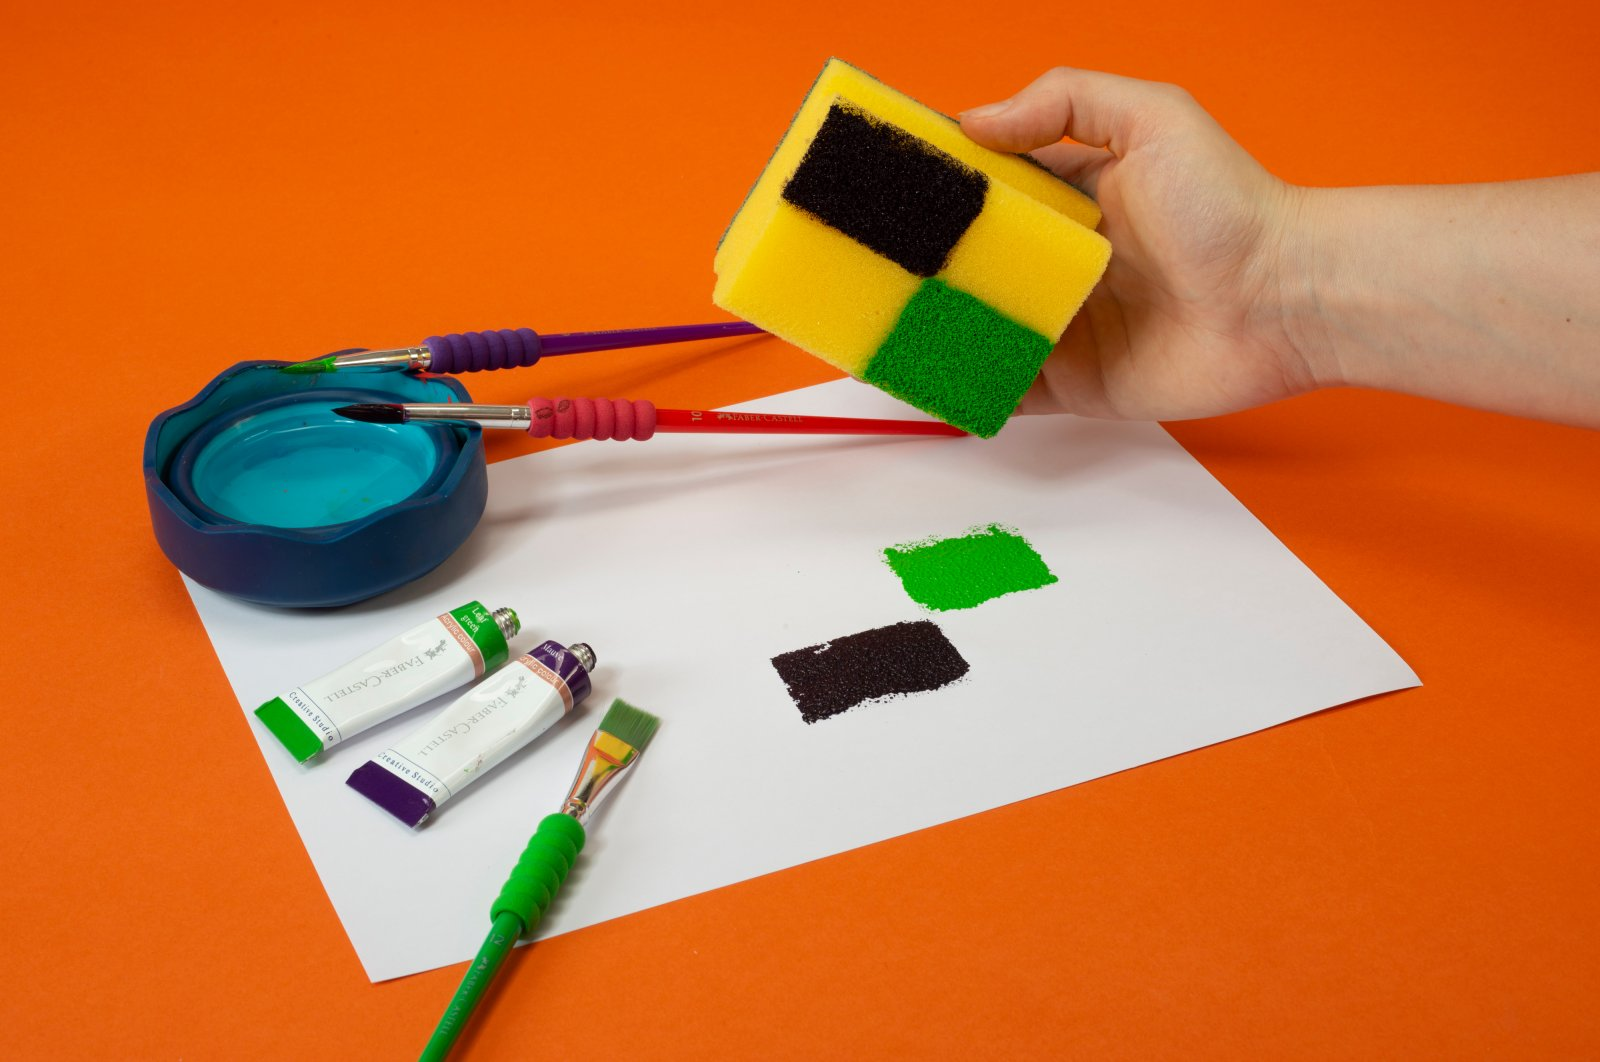 """The """"Sponge Printing Workshop"""" will enable children to learn about the pop art technique of Andy Warhol."""